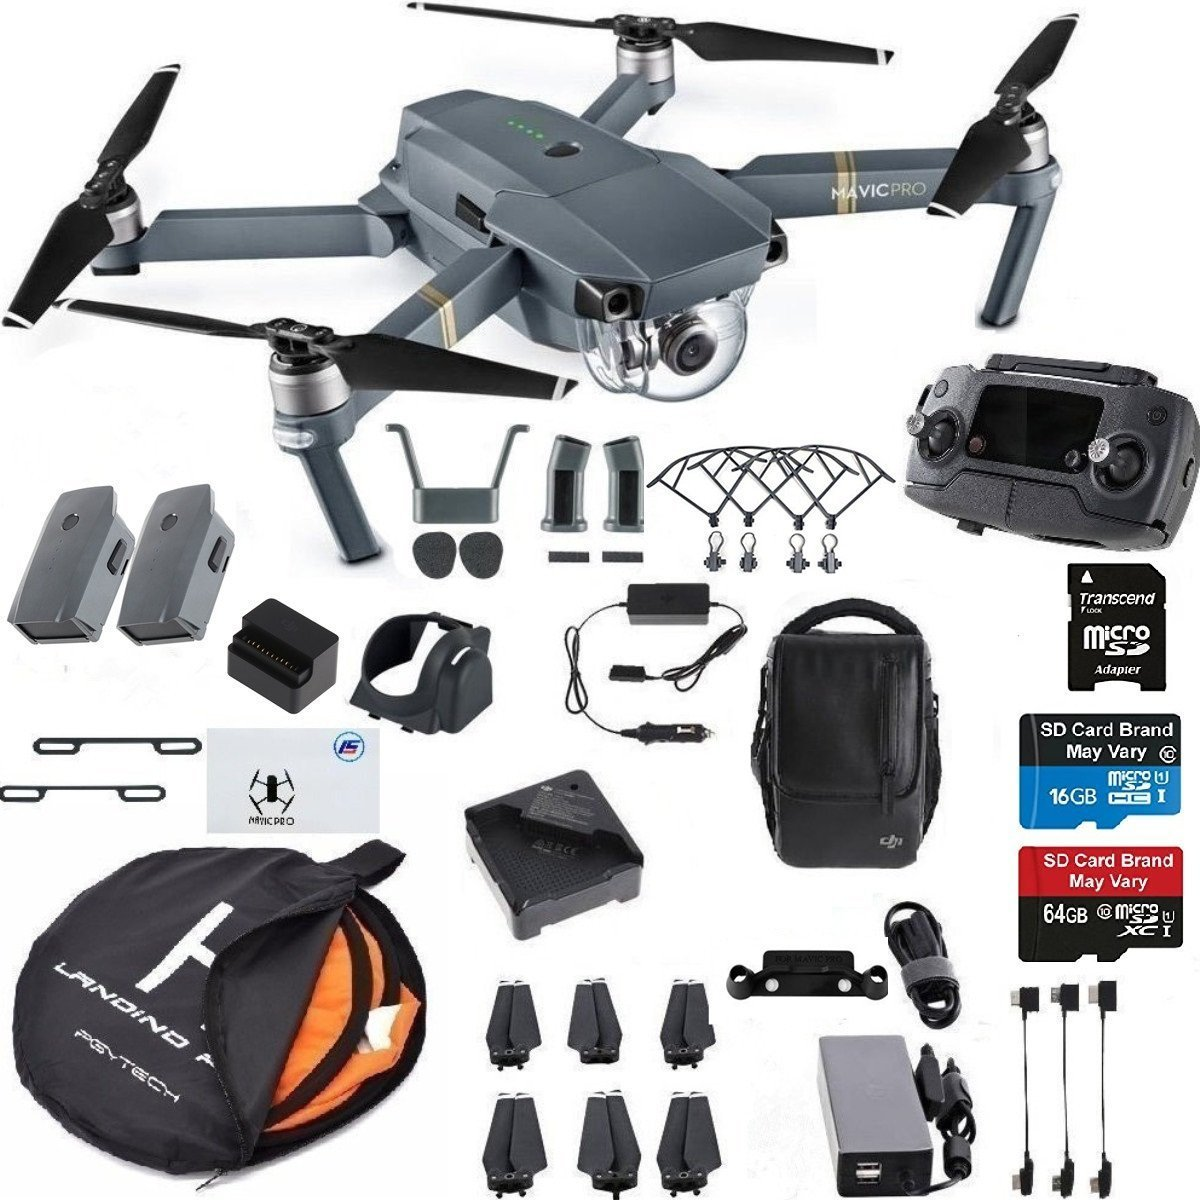 DJI Mavic Pro Fly More Combo Collapsible Quadcopter Drone Safety Bundle with Extra 2 Batteries, Landing Pad Kit and More Accessories (Certified Refurbished)